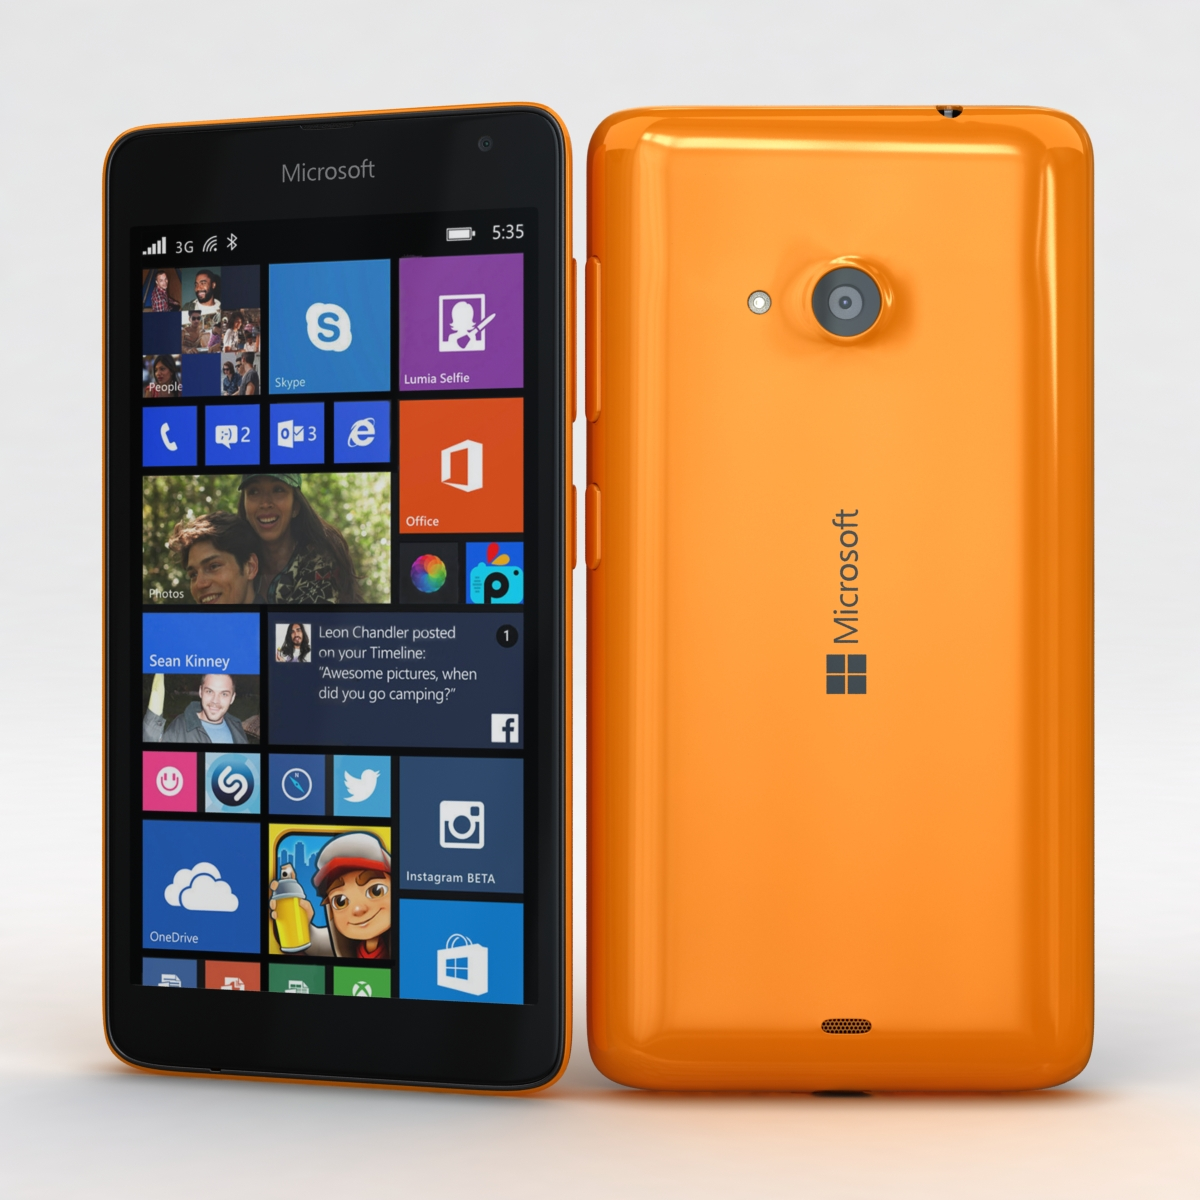 Microsoft Lumia 535 and Dual SIM Orange 3d model 3ds max fbx c4d obj 204103